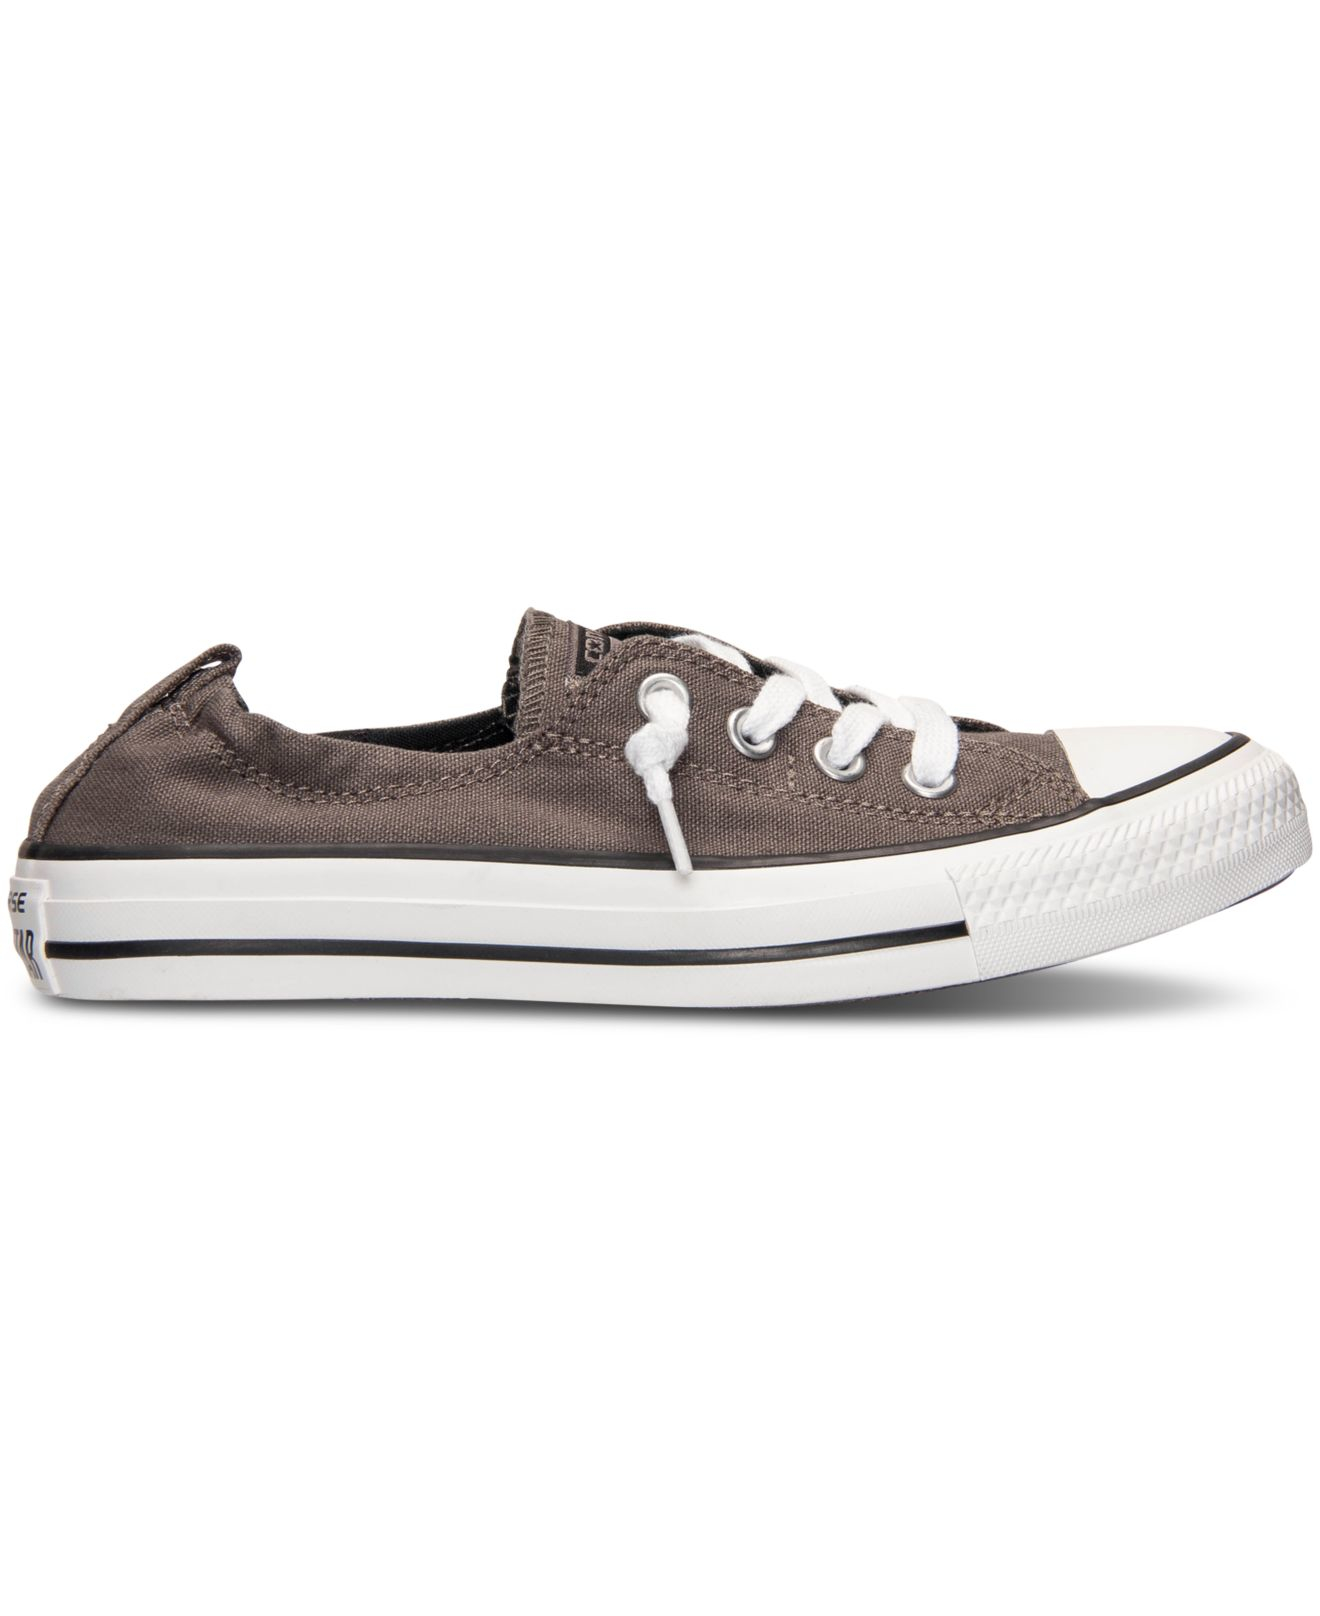 4400fe0dd053 Lyst - Converse Women s Chuck Taylor Shoreline Casual Sneakers From ...